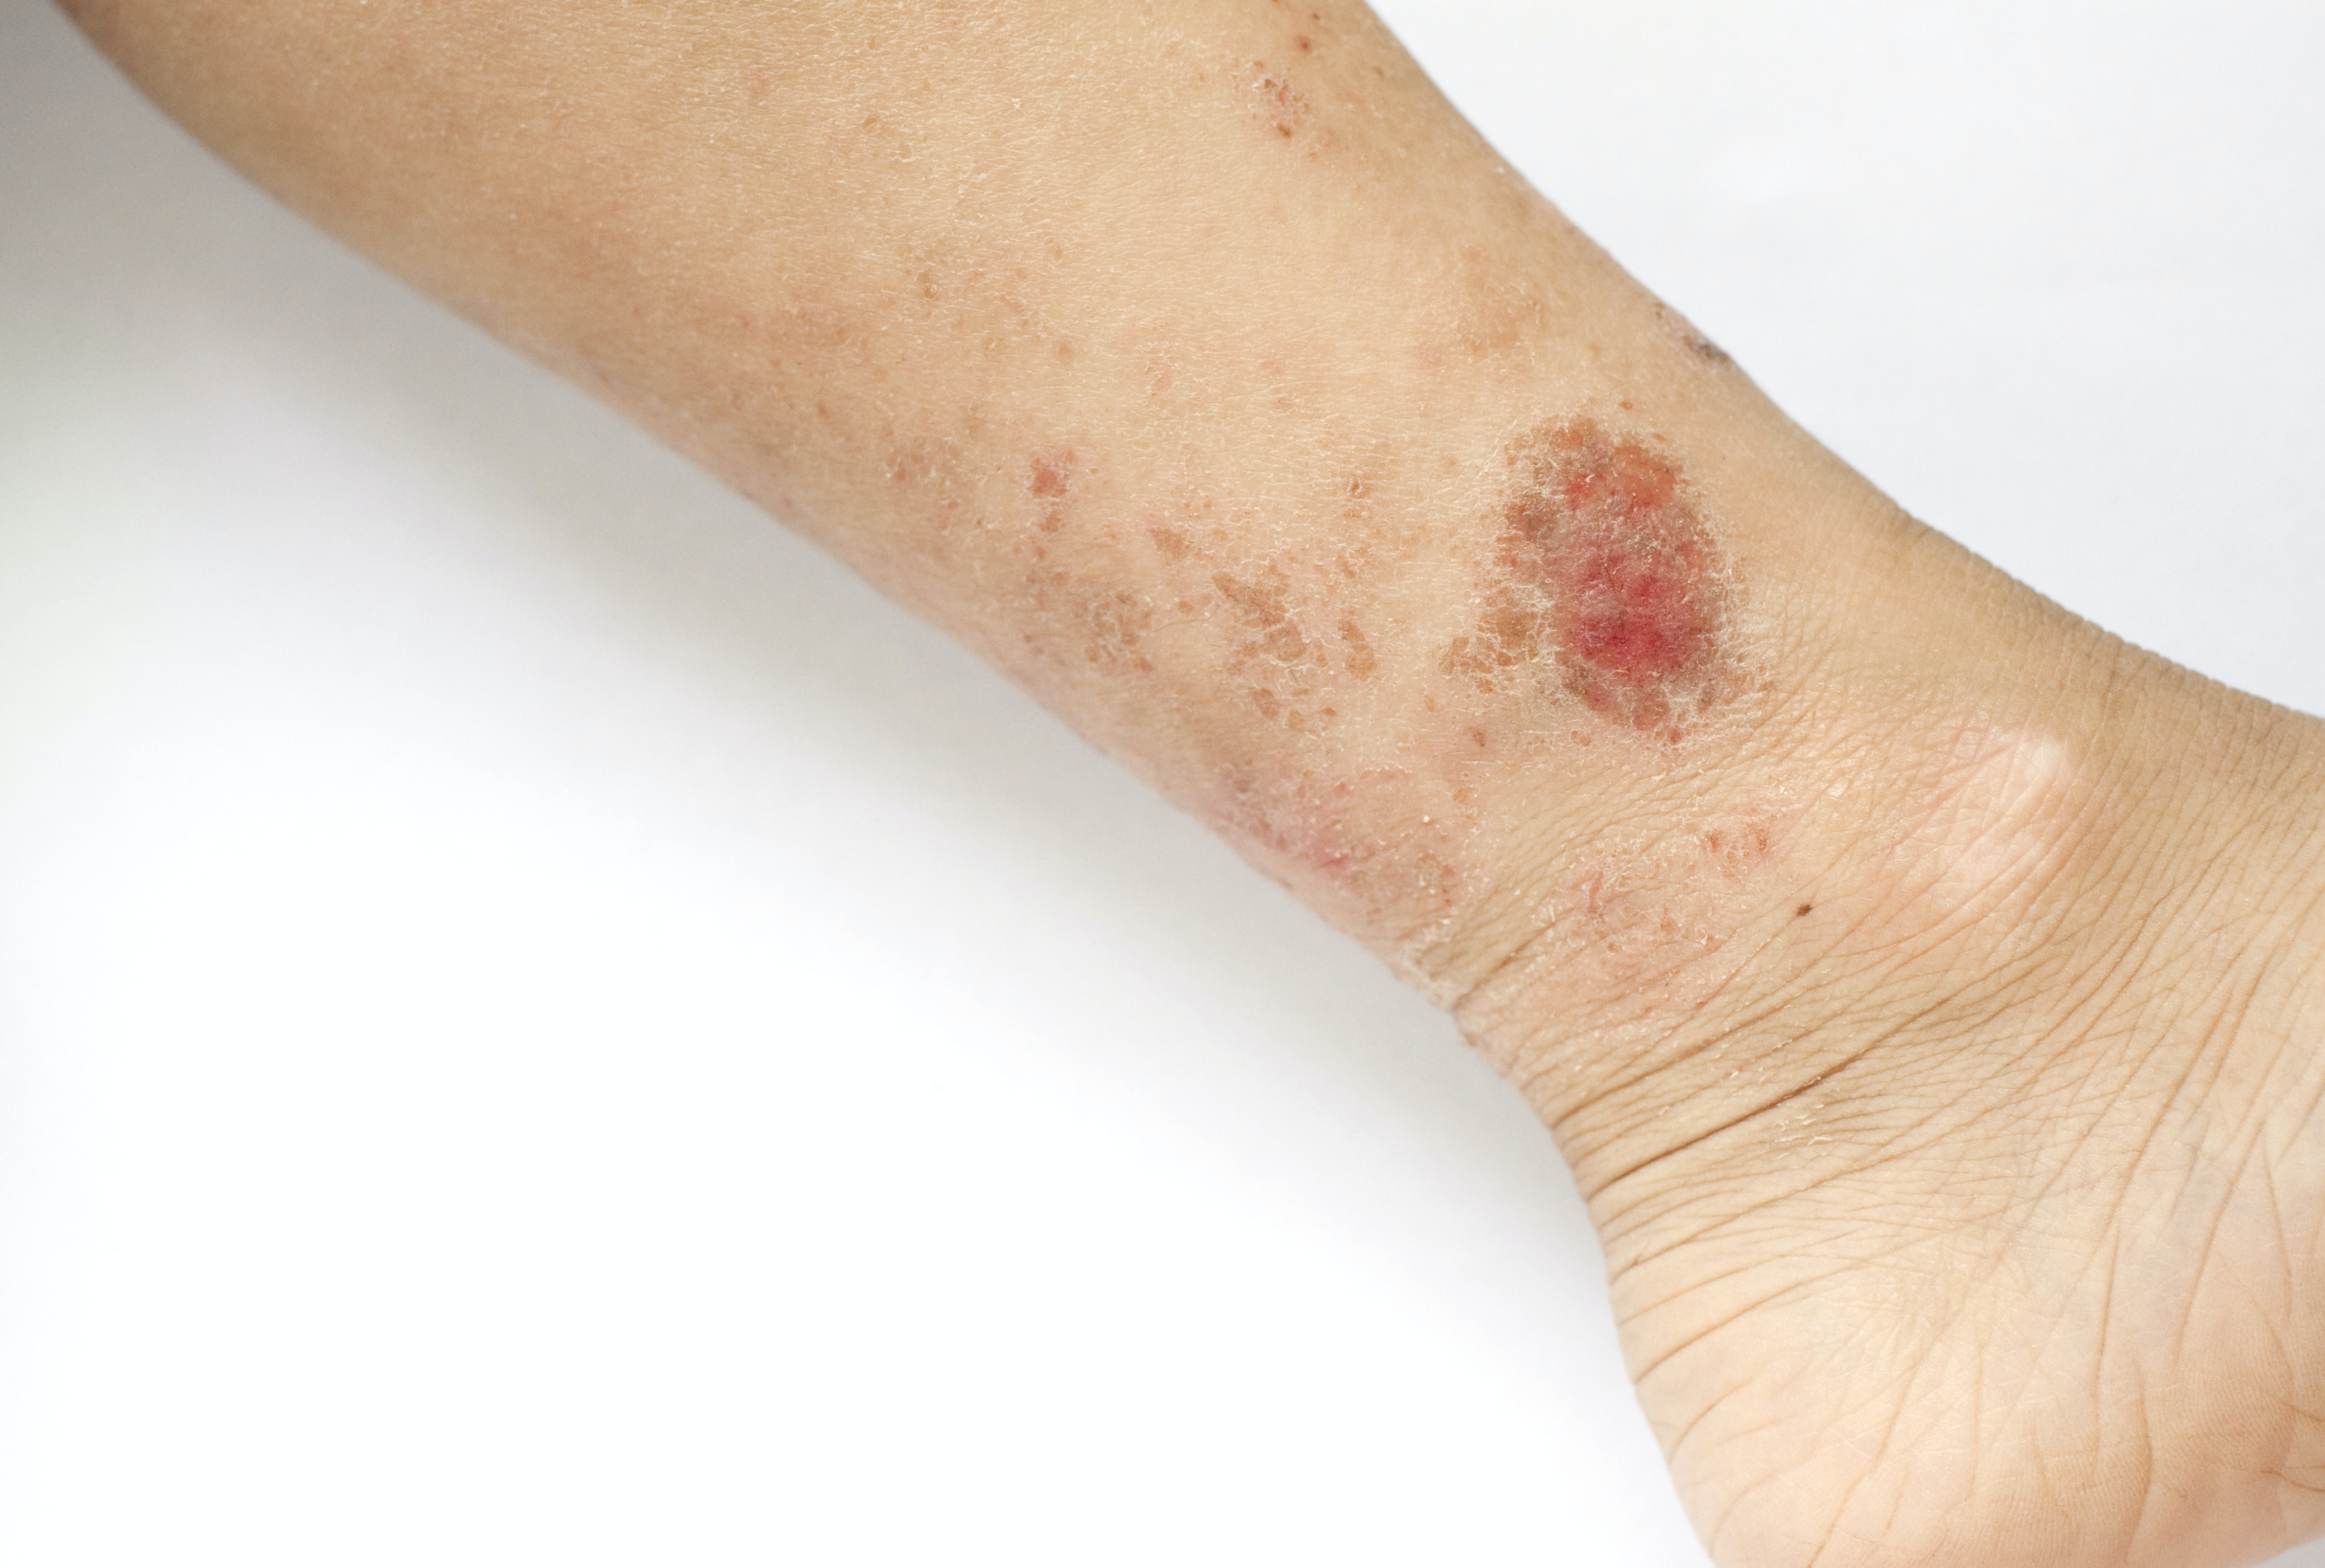 An image depicting a person suffering from rash on one lower leg symptoms